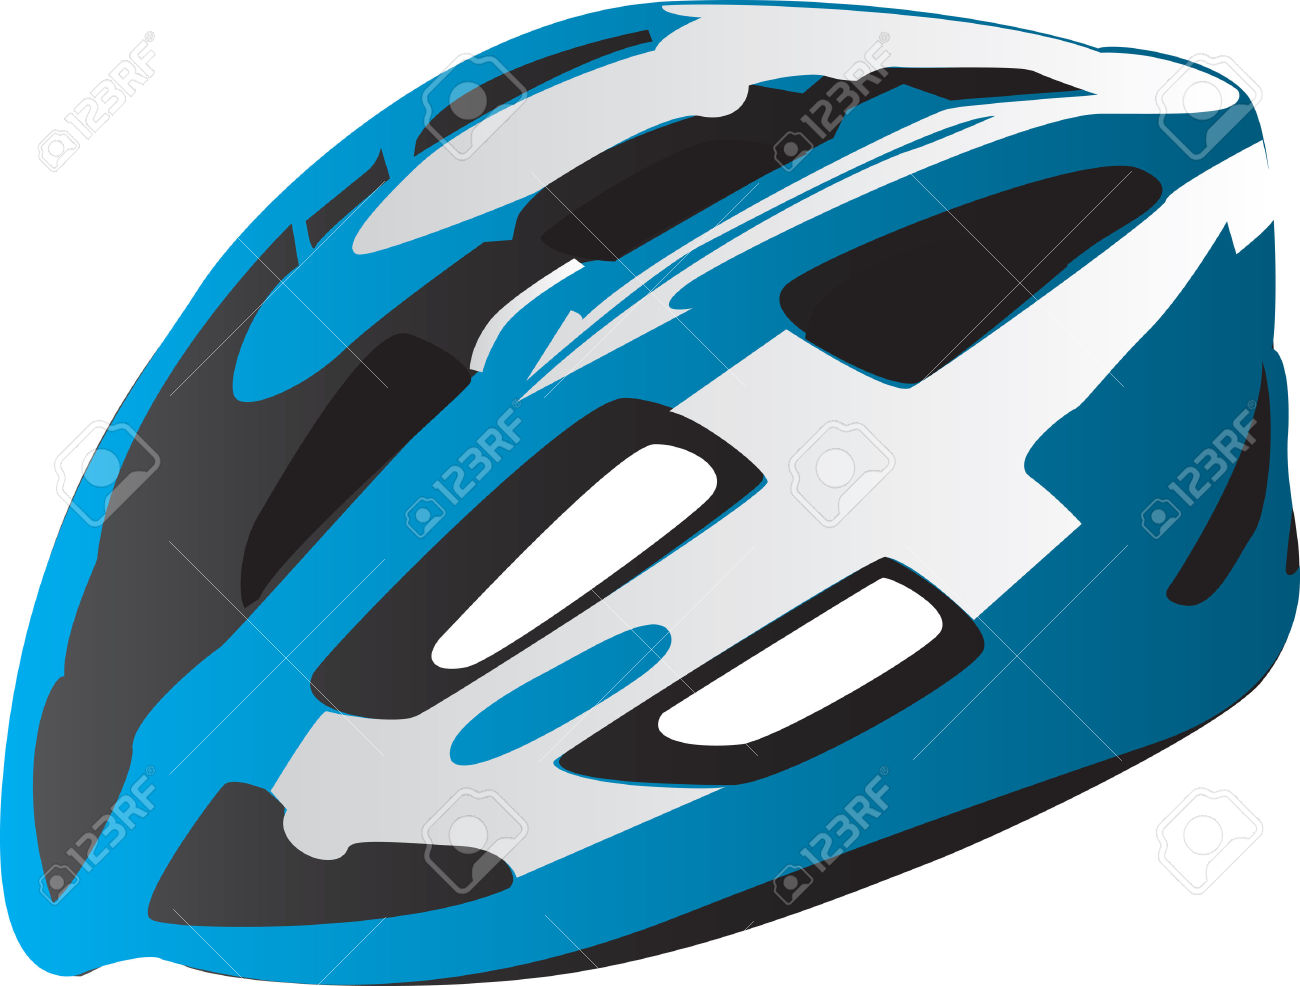 bike helmet safety is a big problem in our society Governments claim the only way to ride a bike or motorcycle is with an approved helmet for you safety having a different religion does not afford you any protection in a crash so are helmets the only safe way to go, it's a yes or no answer, and if not, how do they justify an exemption if they claim to be acting in our best interest.